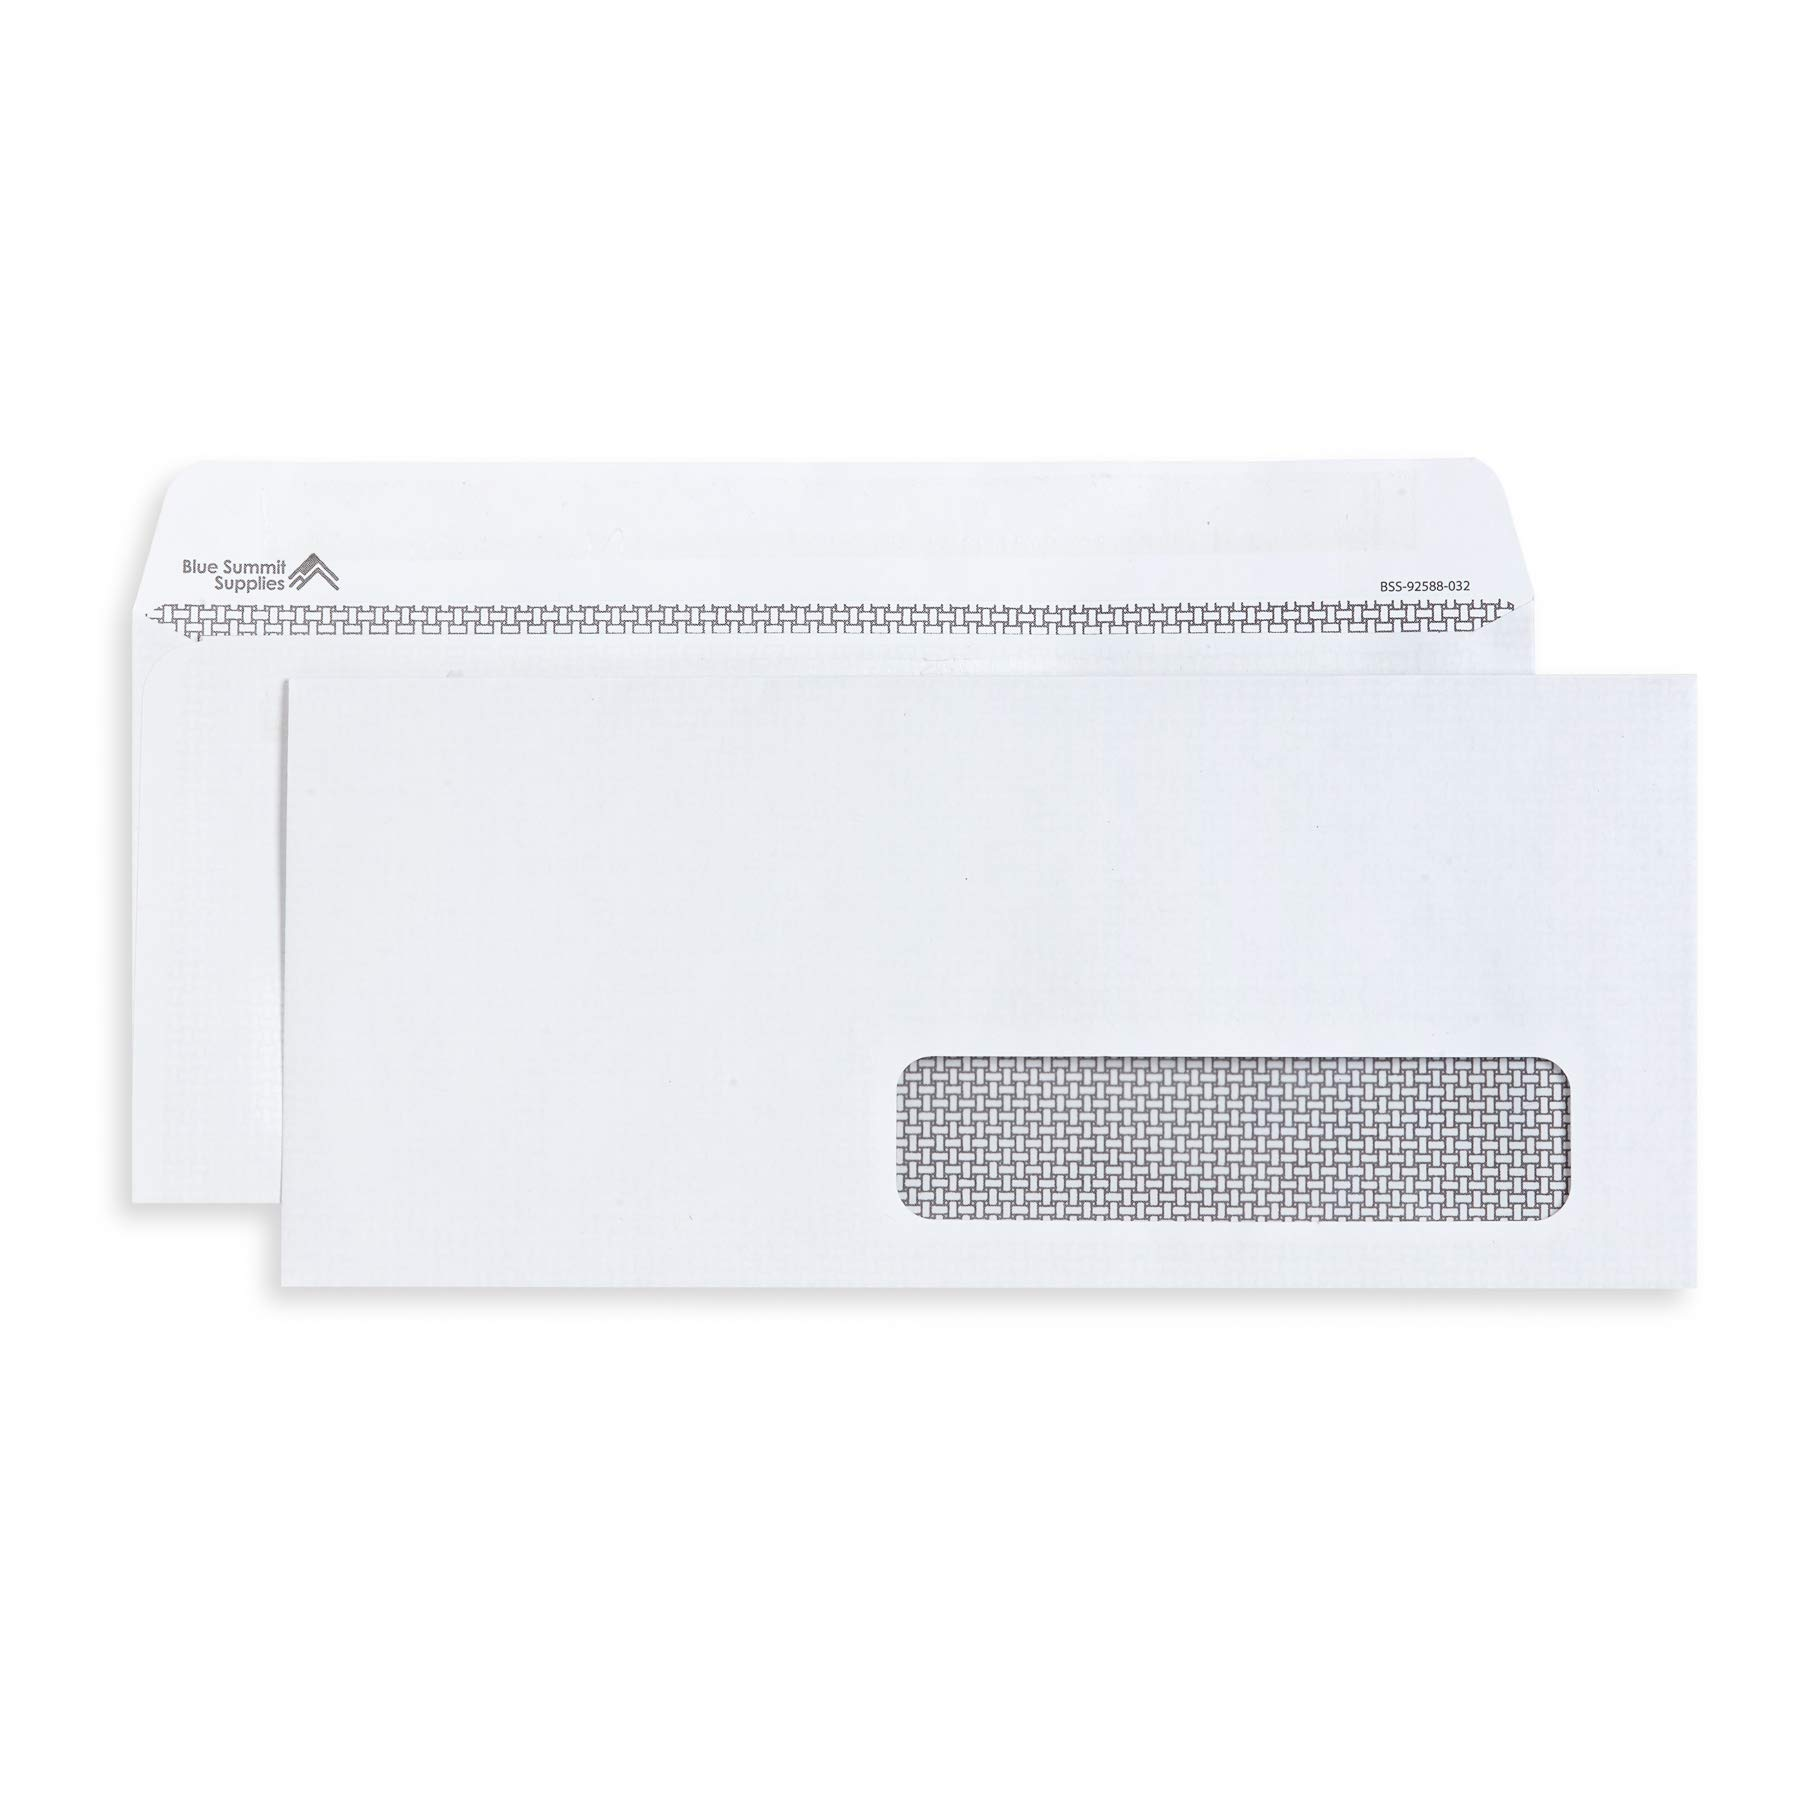 500 Self Seal Number 10 Single Right Window Envelopes - Security Lining - Designed for Secure Mailing of Invoices, Documents, and Business Statements, 4 1/8 x 9 1/2 Inches, 500 Ct by Blue Summit Supplies